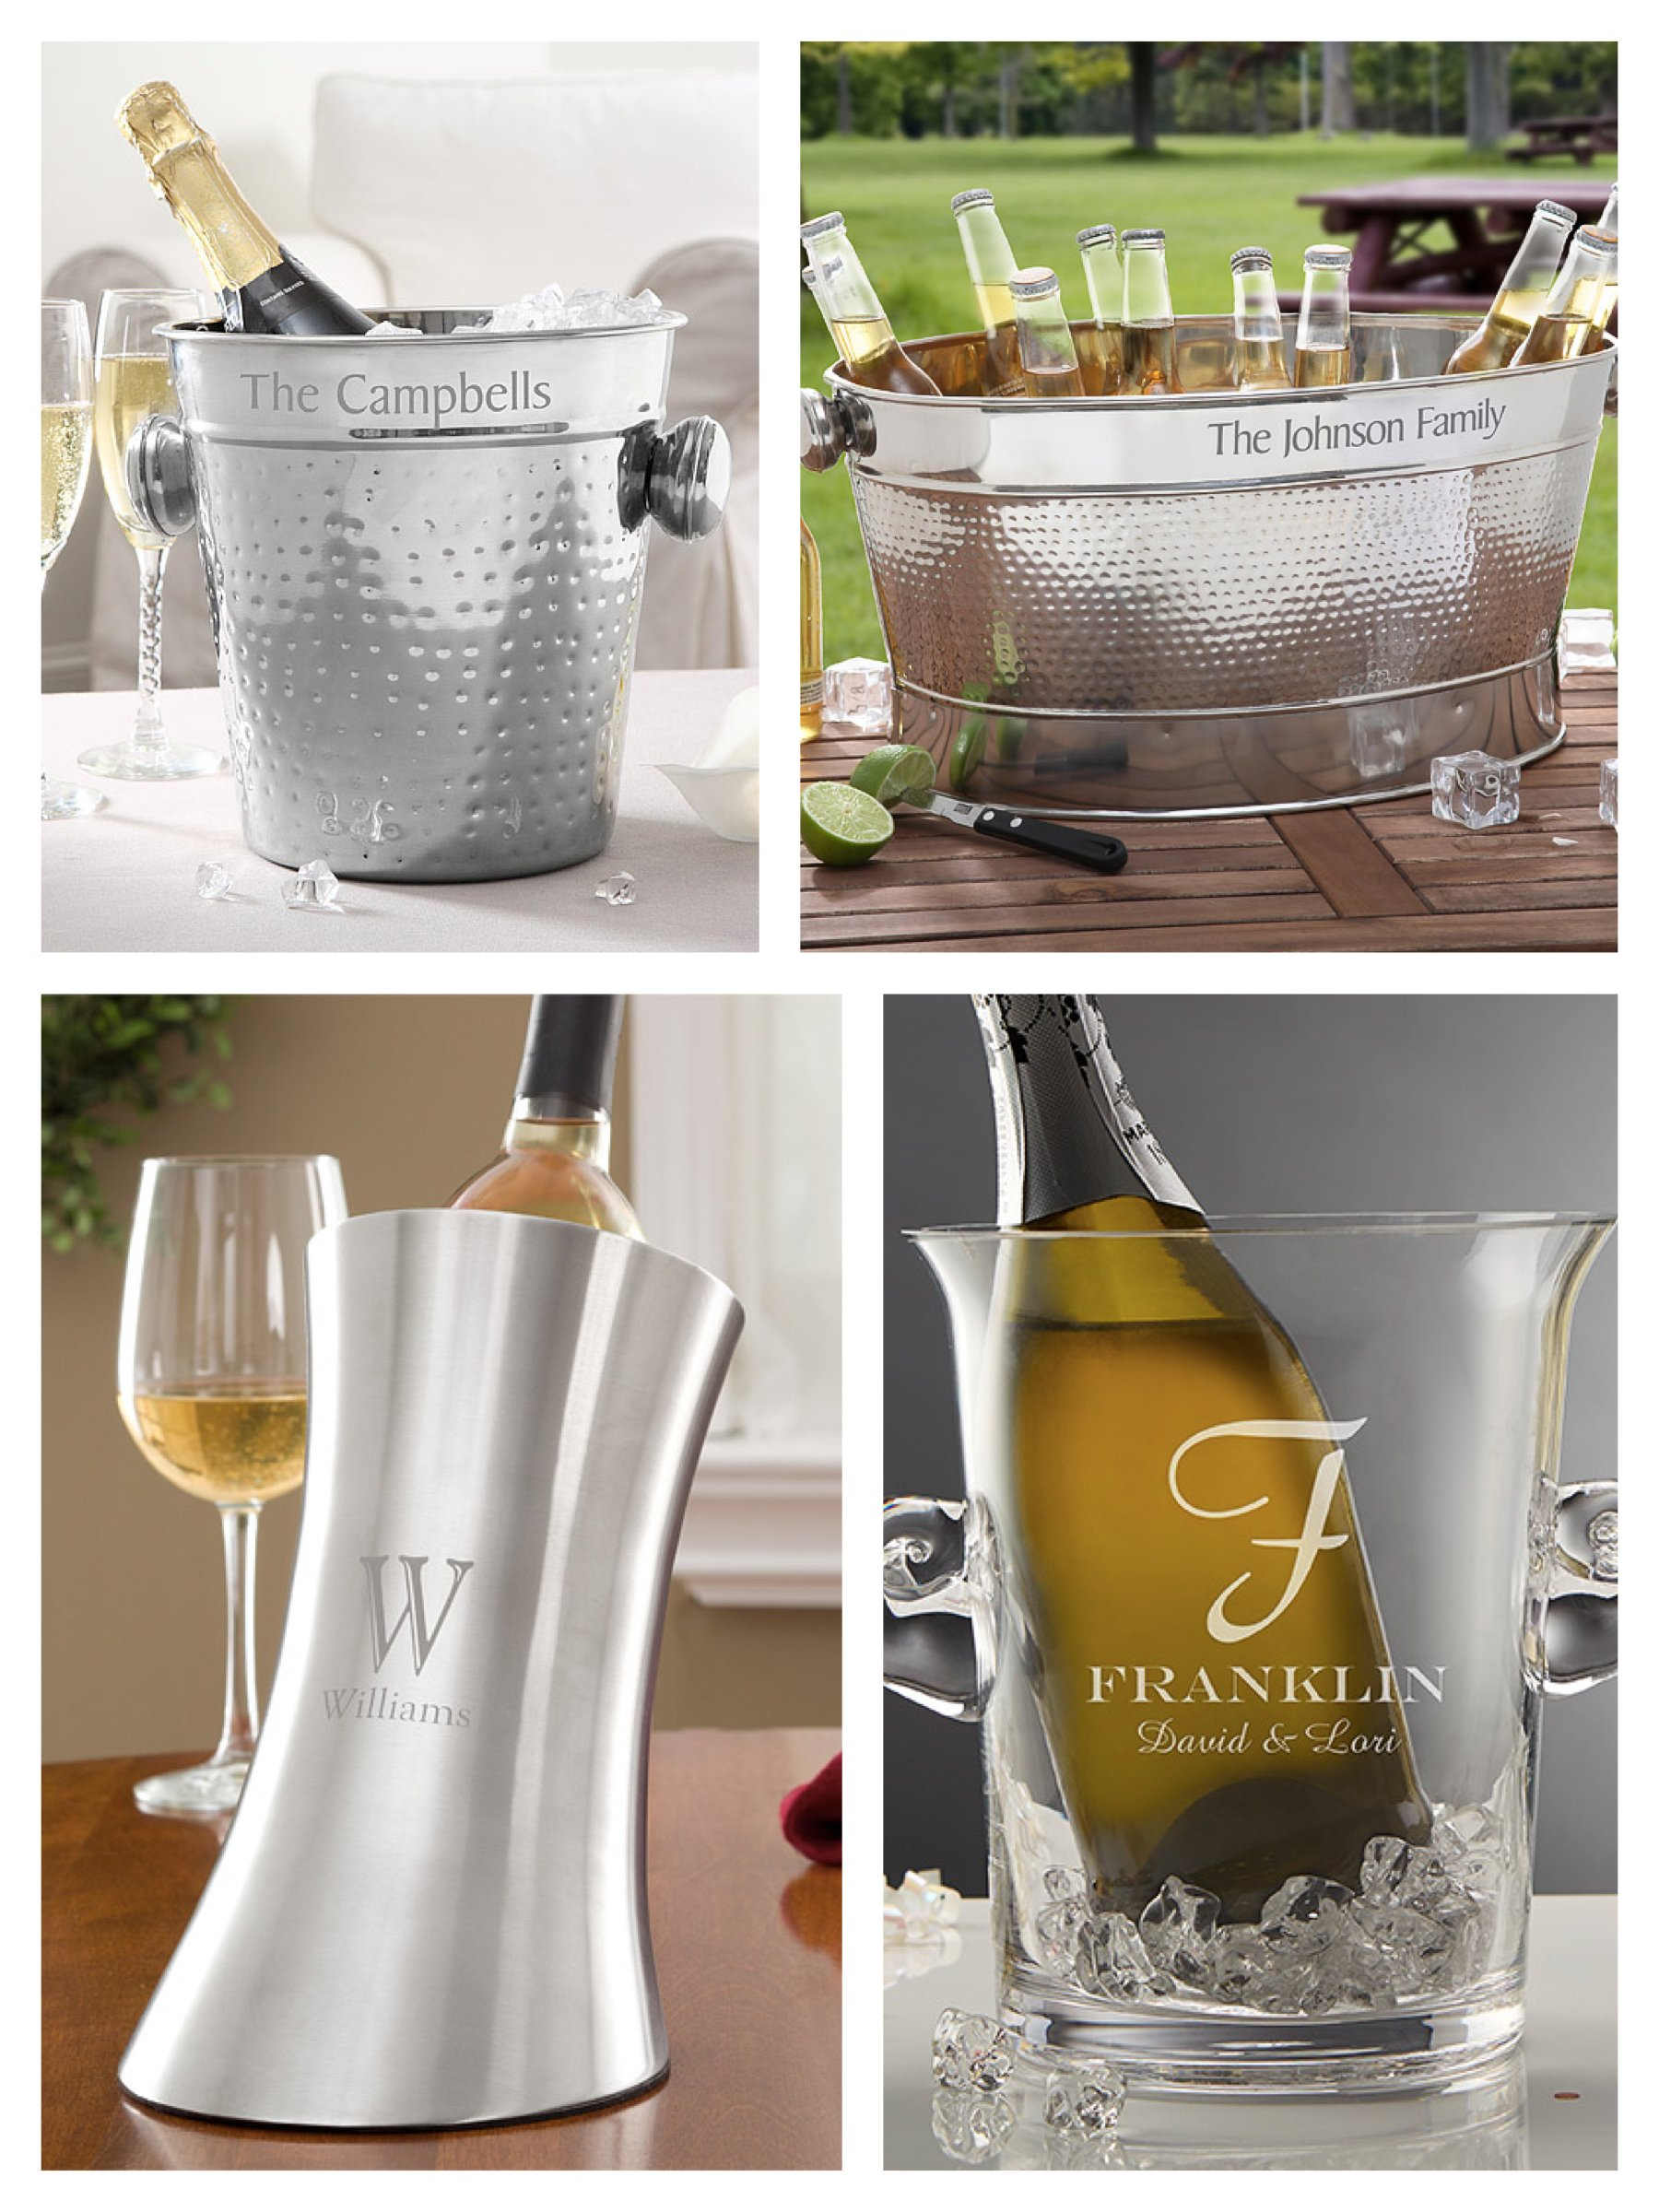 Wine Chillers and Coolers